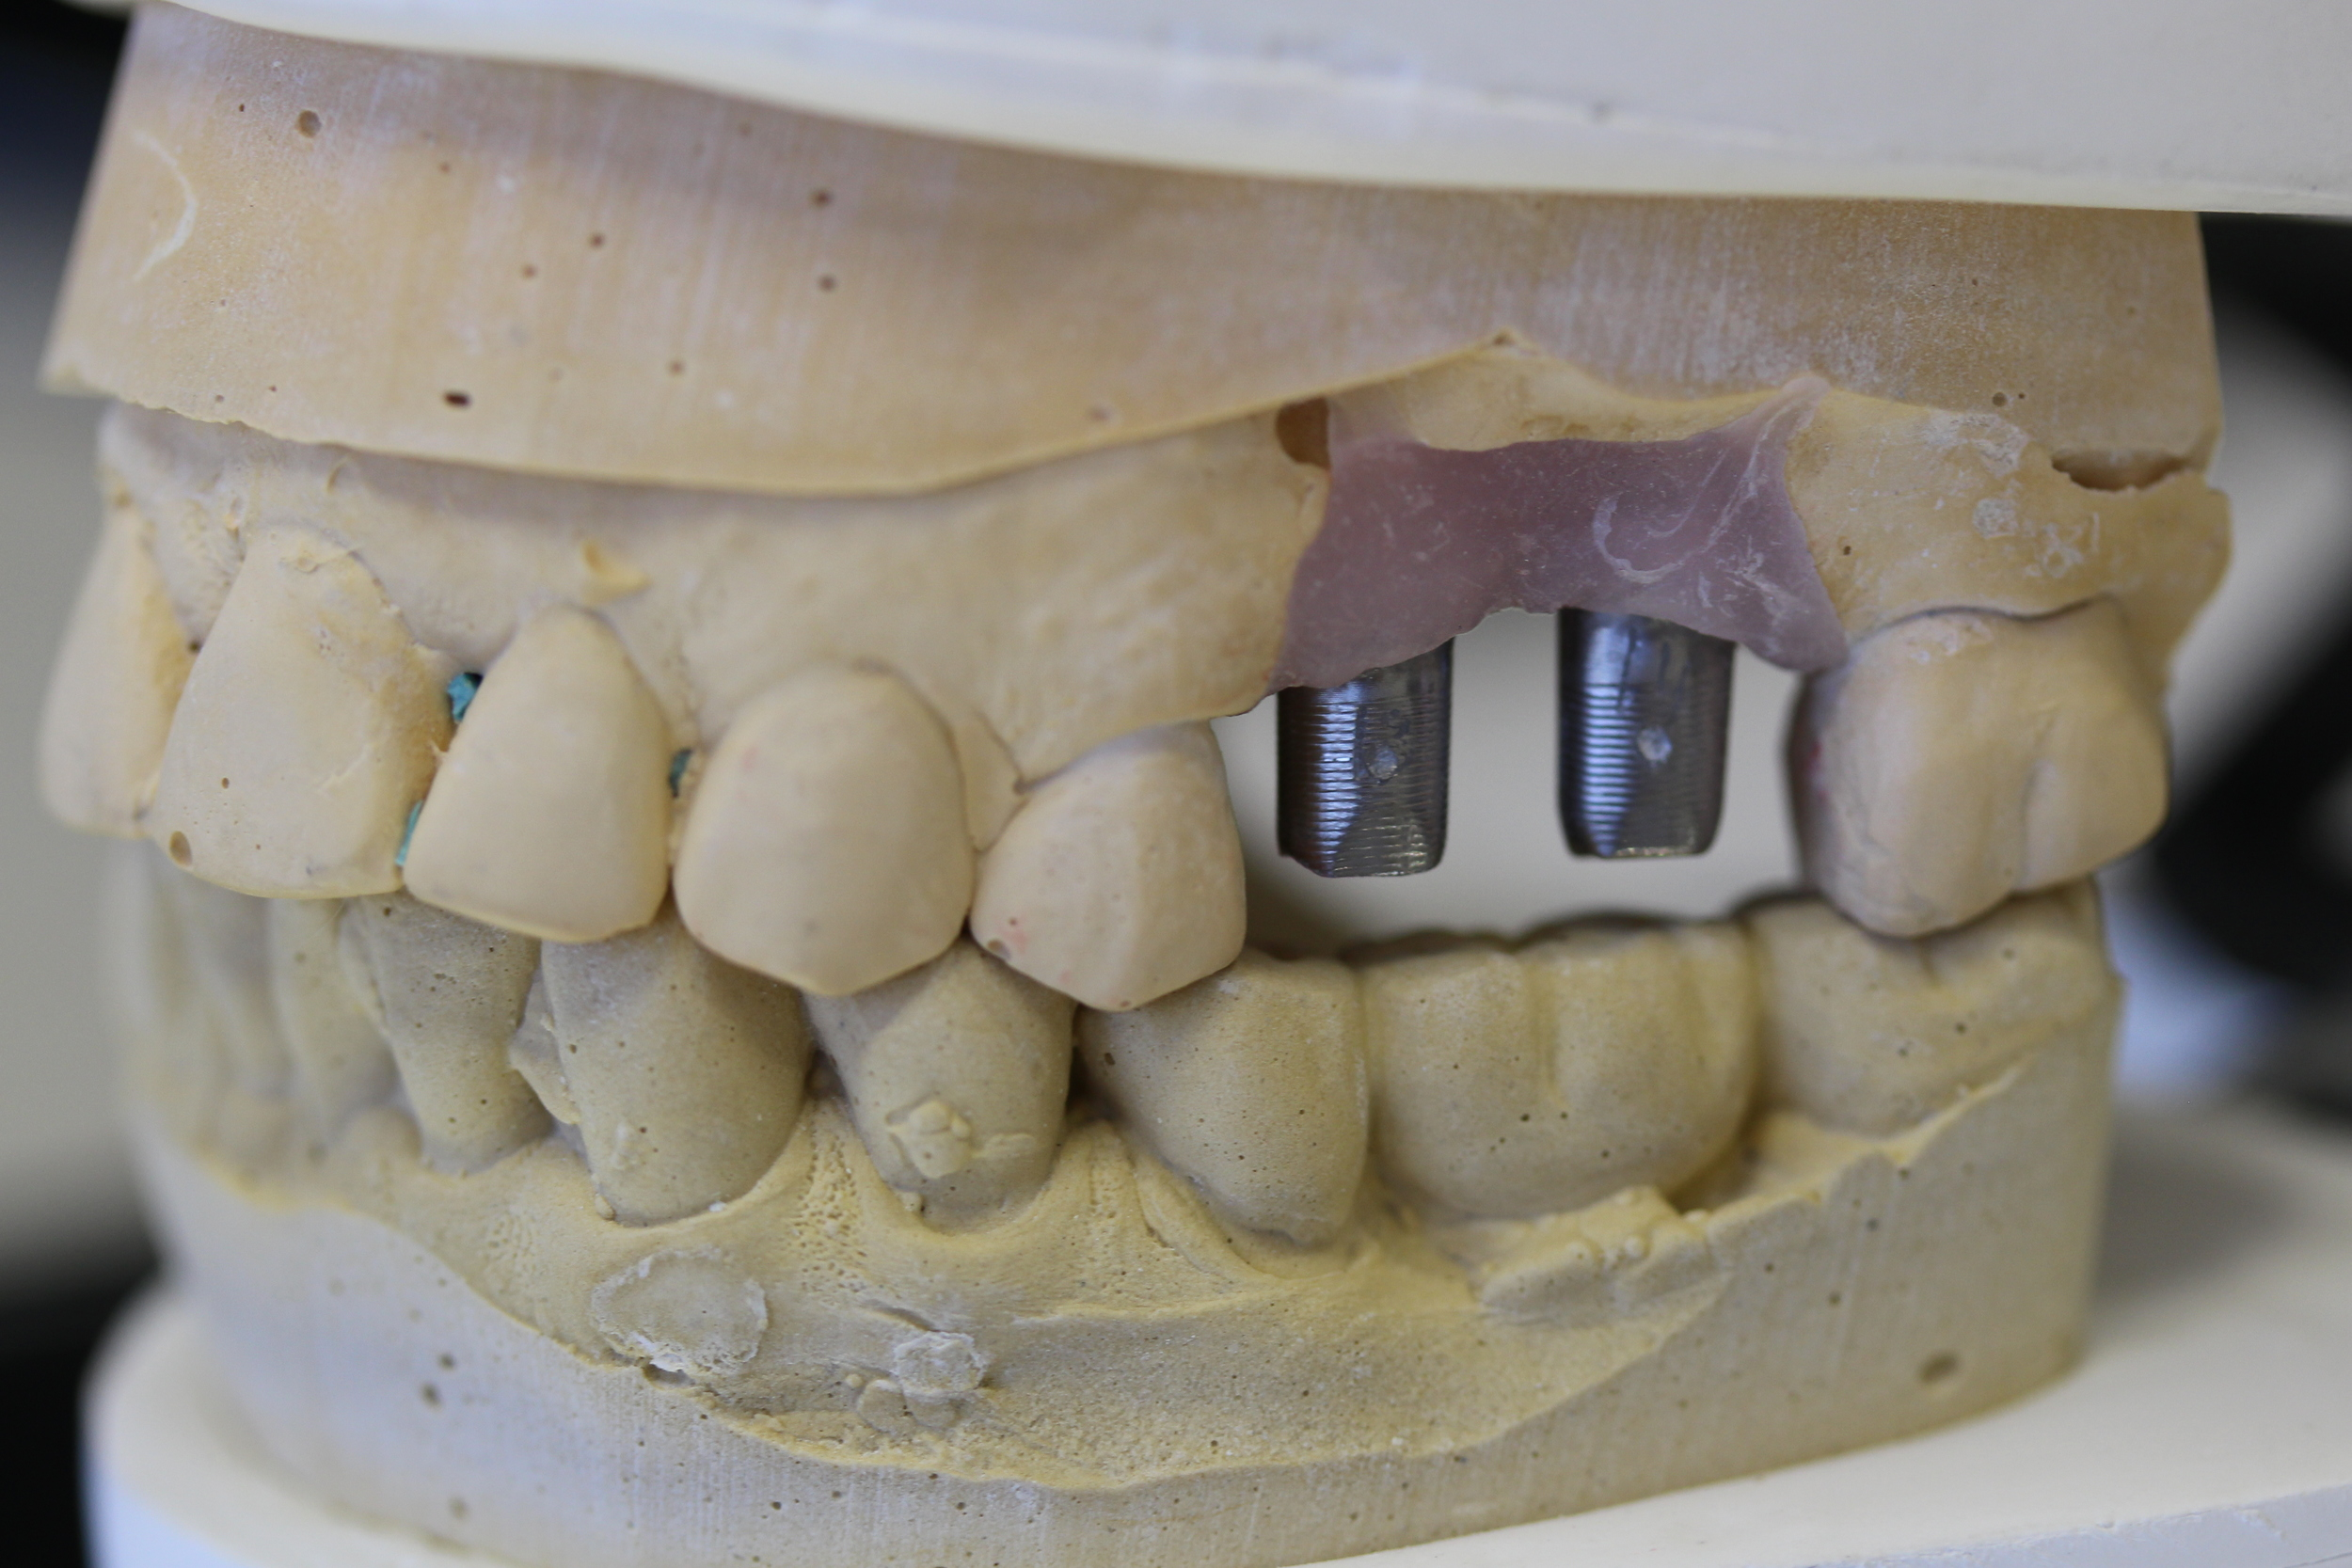 Model view of the abutments connected to the implants.